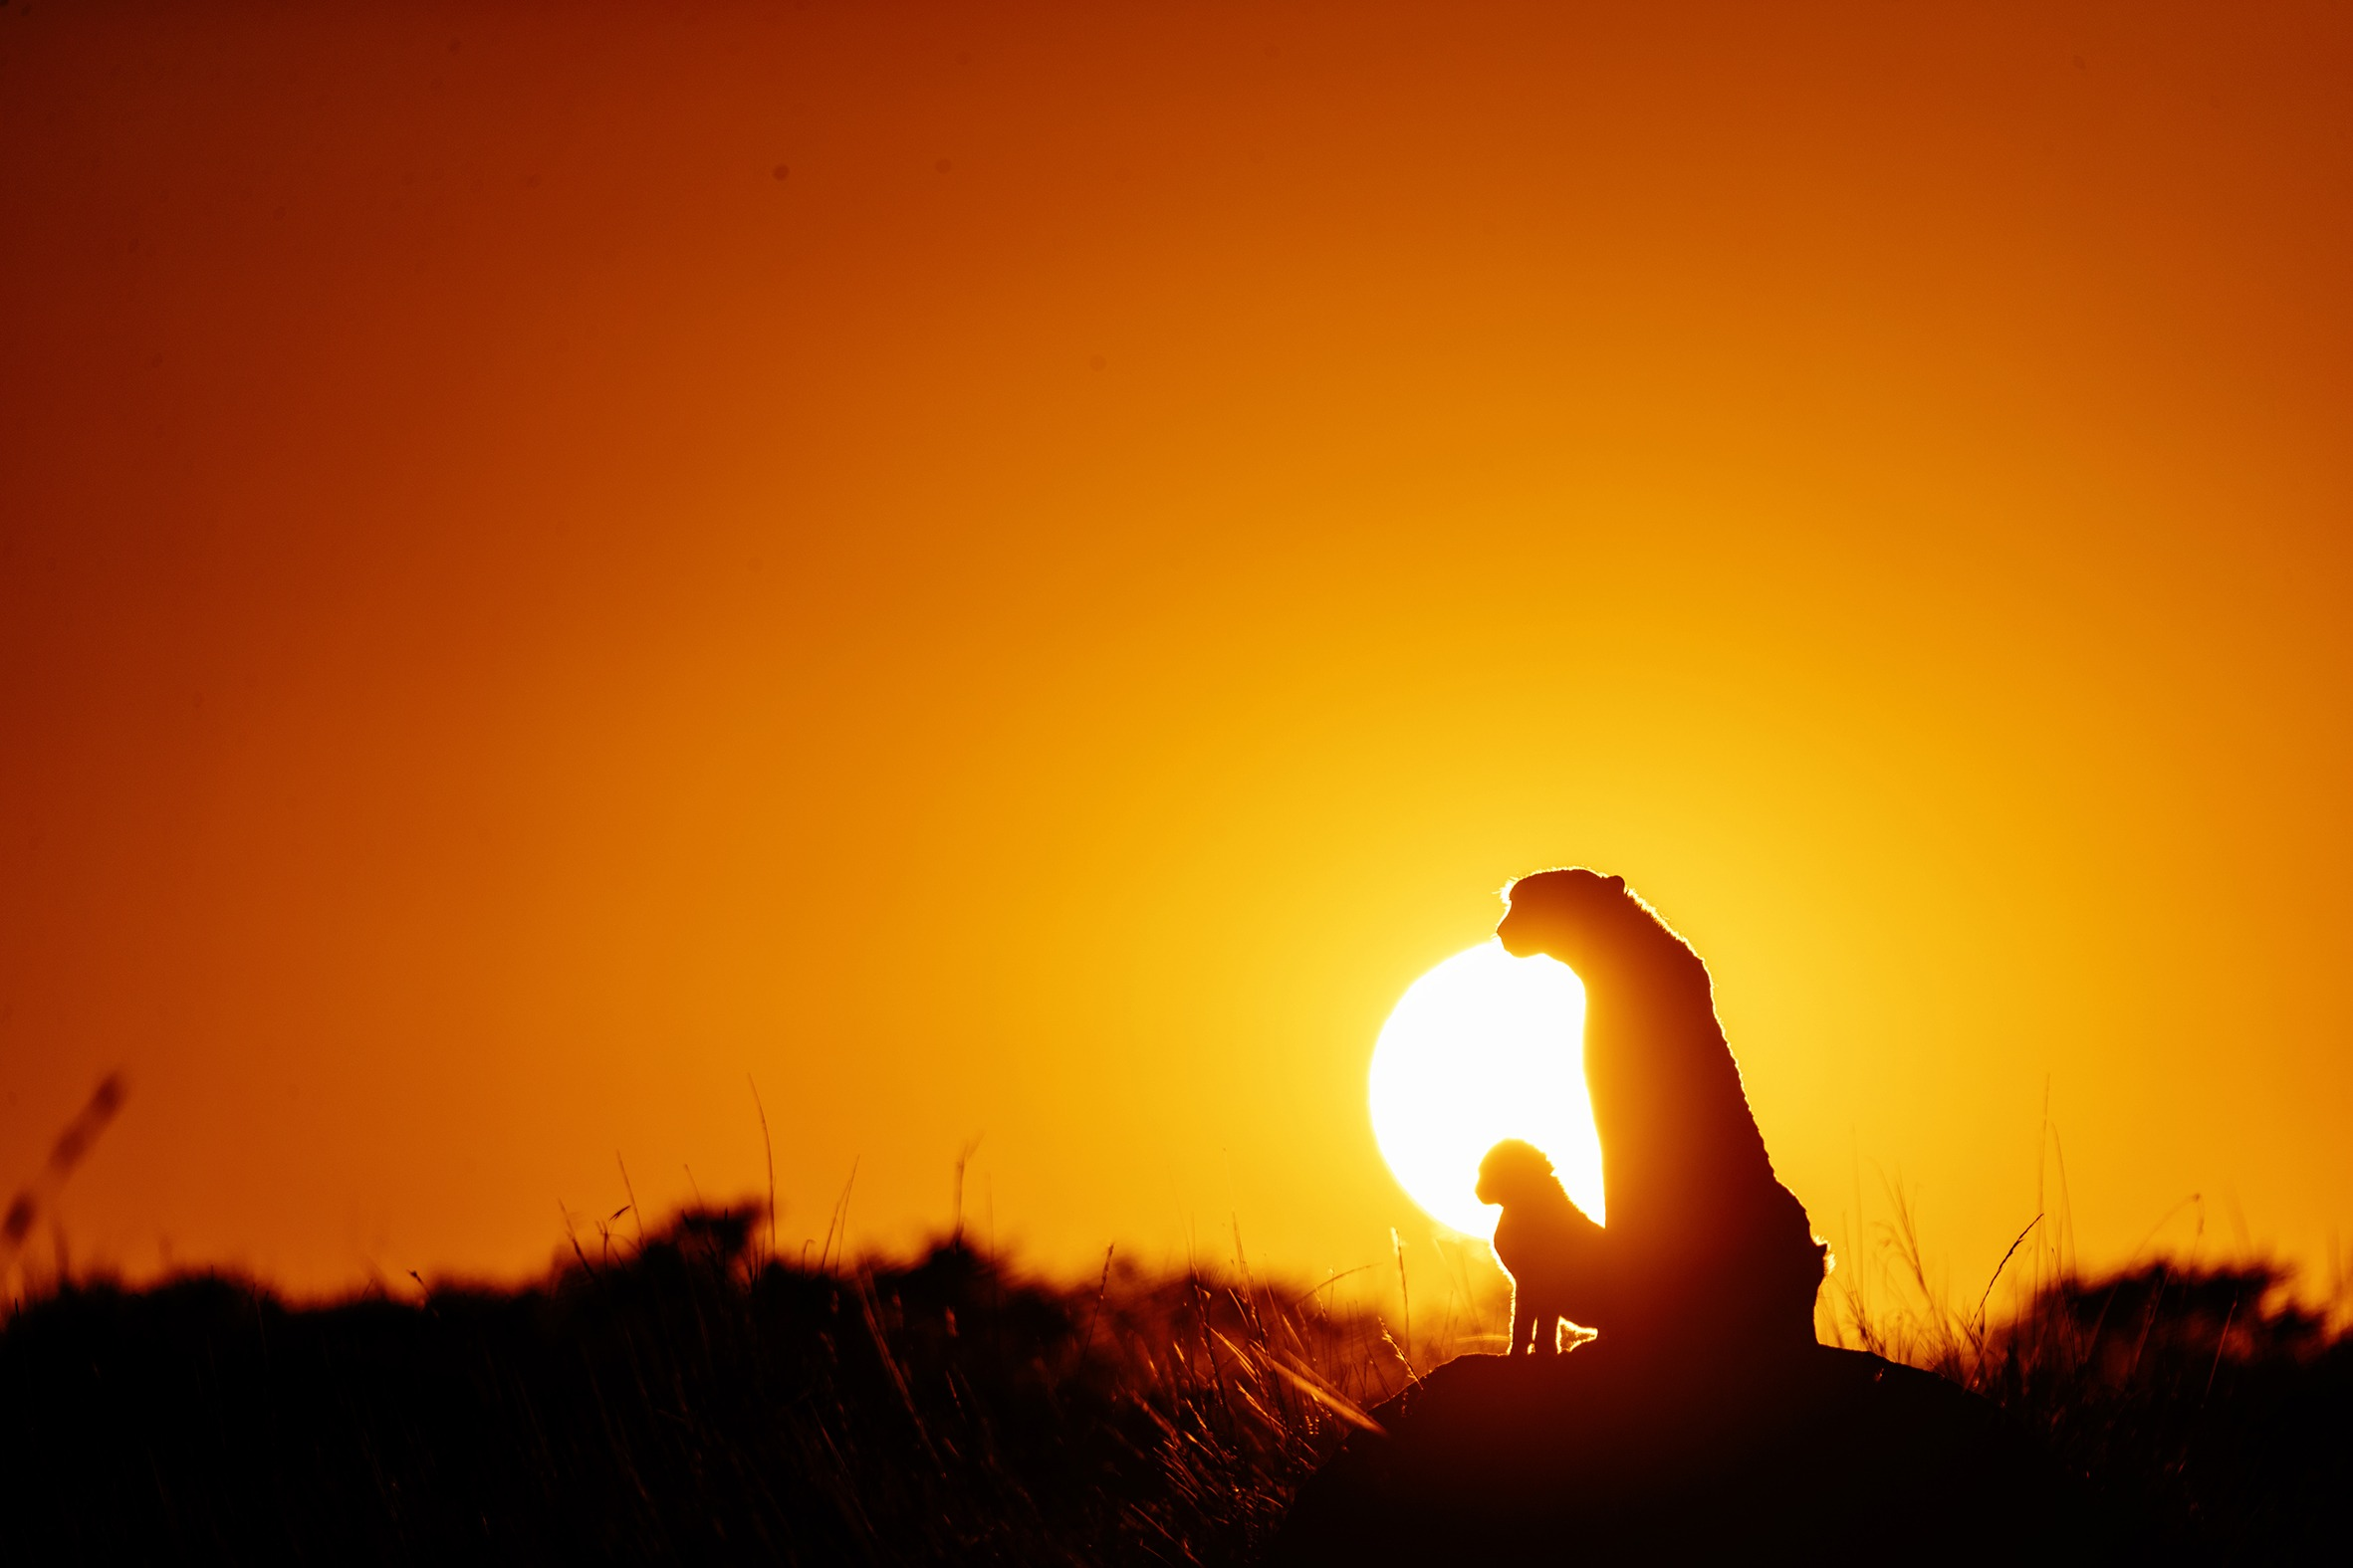 Kweli the cheetah stands on a mount at sunrise with her 2 cubs as captured by ClementWild on photo safari